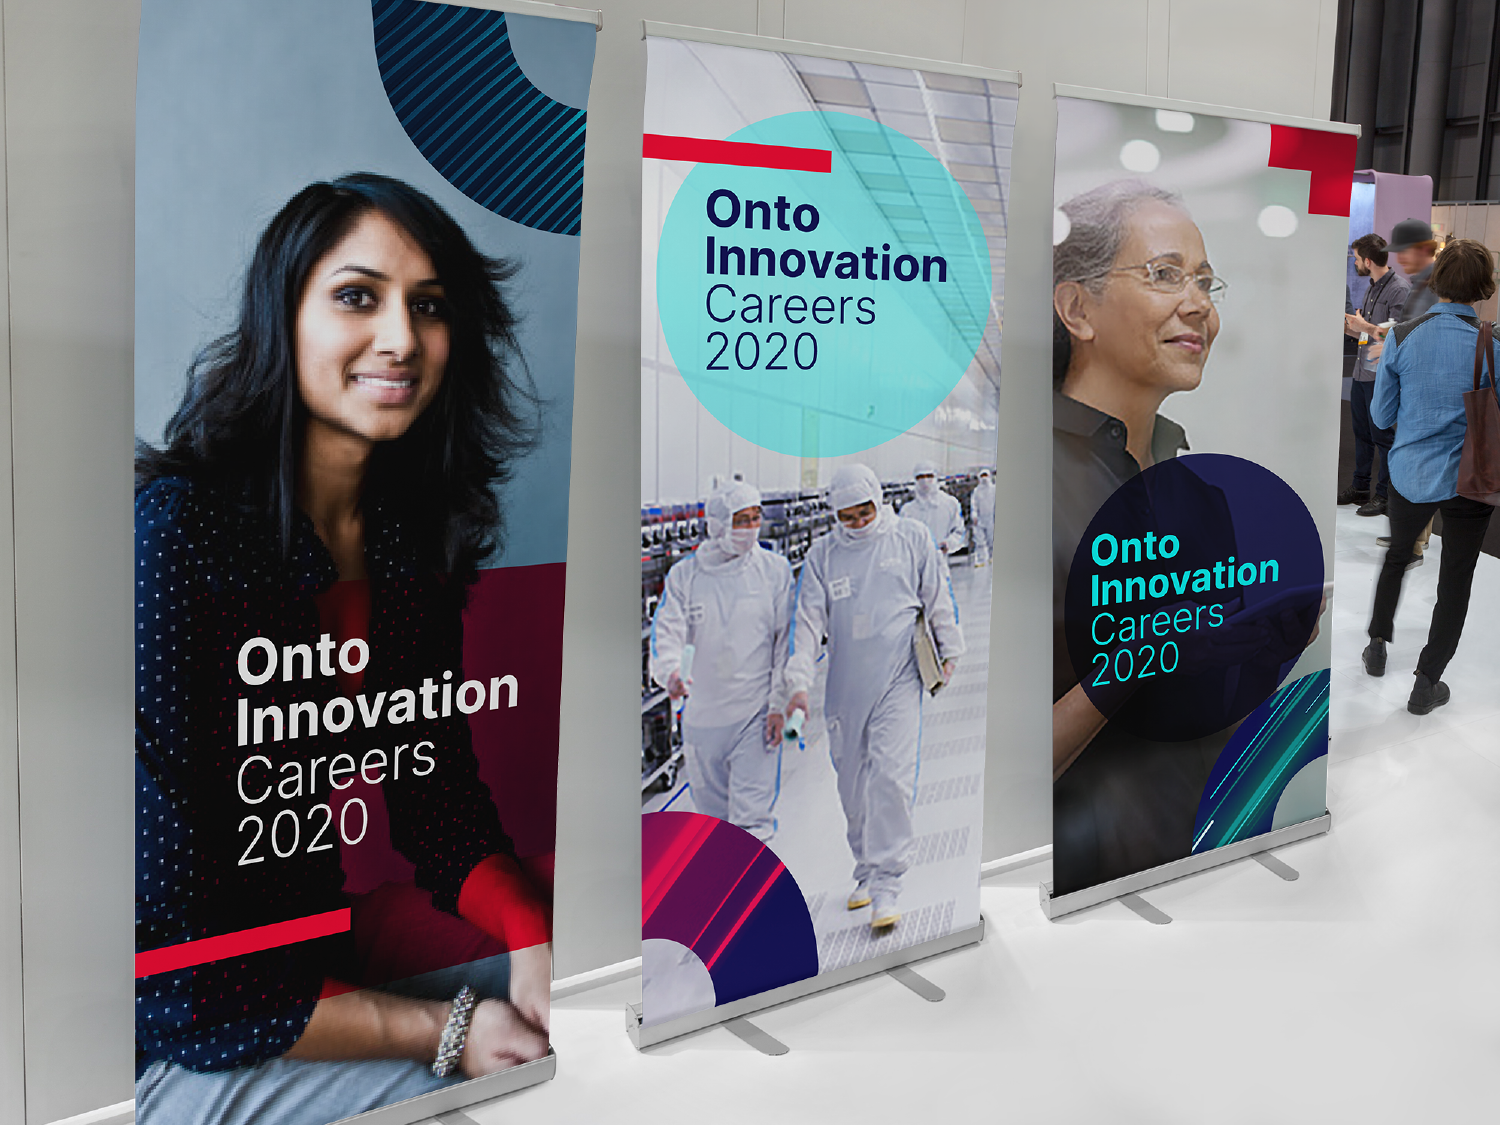 Career fair banners for Onto Innovation, utilizing graphic elements developed for the brand